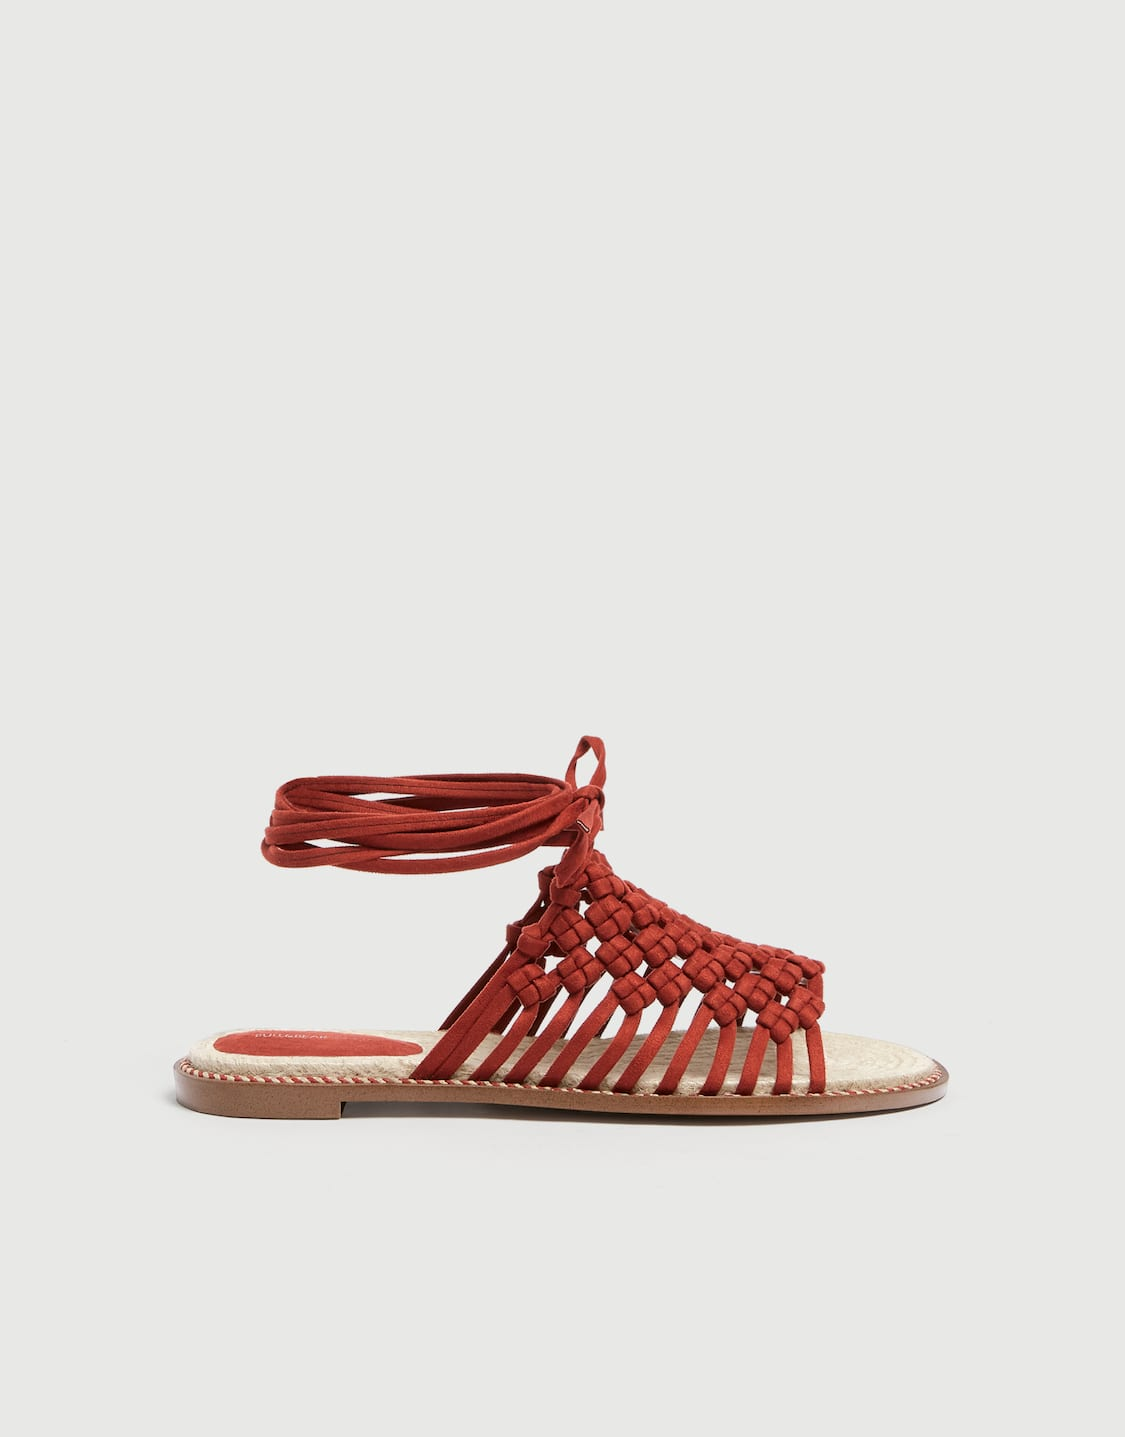 321e4b8e5fb3 Braided coral sandals - PULL BEAR